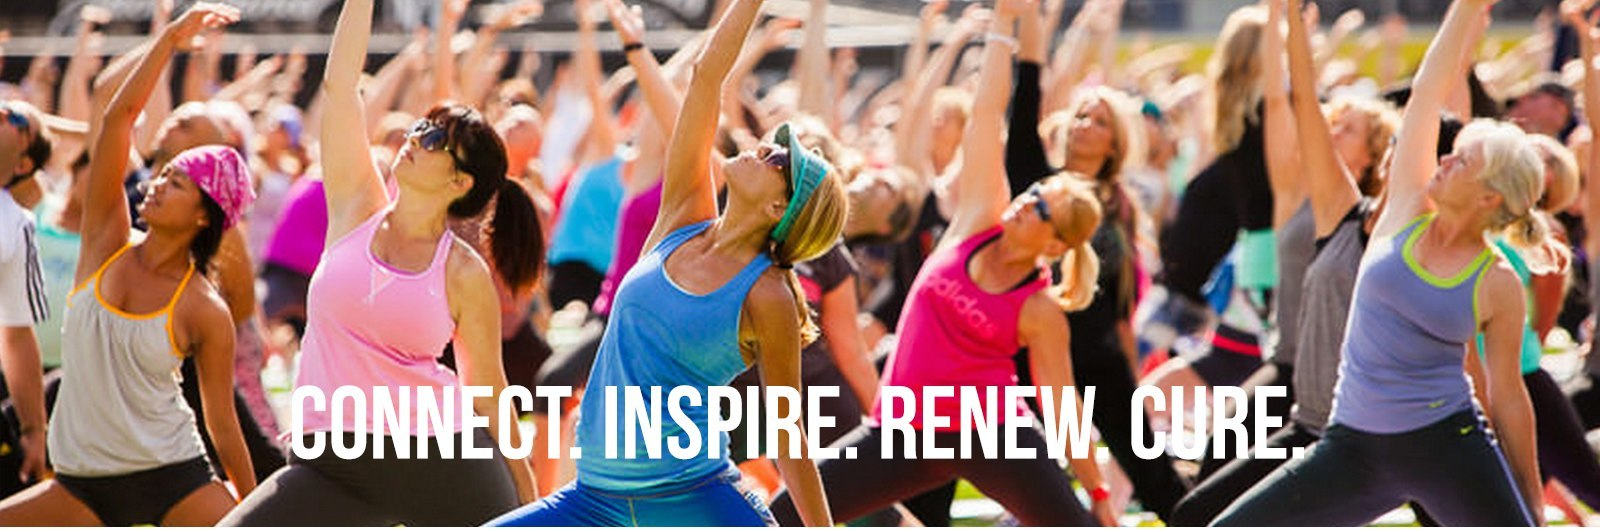 Connect. Inspire. Renew. Cure.